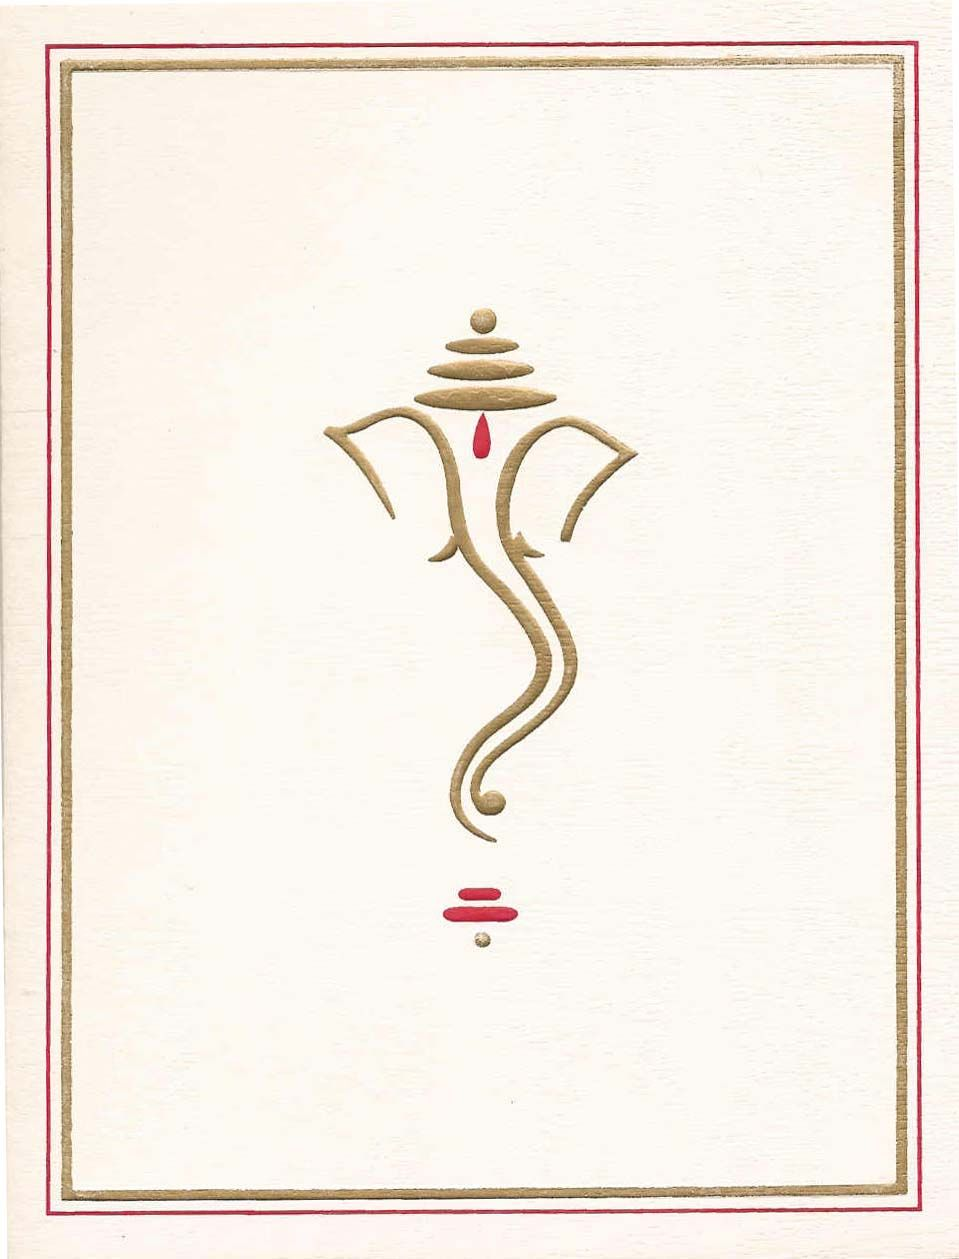 Ganesh symbol for wedding cards gold google search wedding ganesh symbol for wedding cards gold google search biocorpaavc Image collections